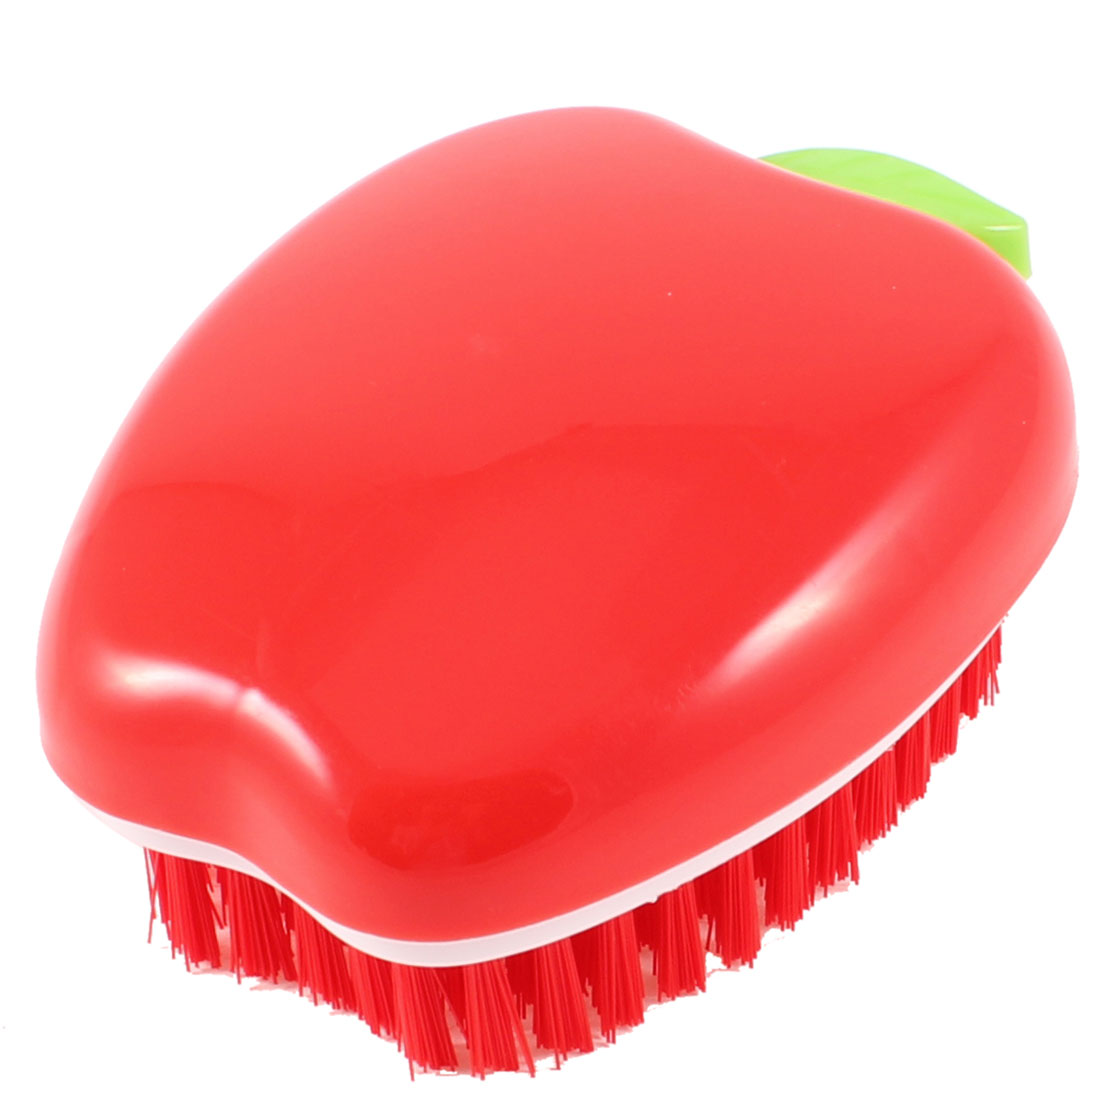 Red Plastic Apple Shaped Clothes Shoes Scrubbing Washing Brush